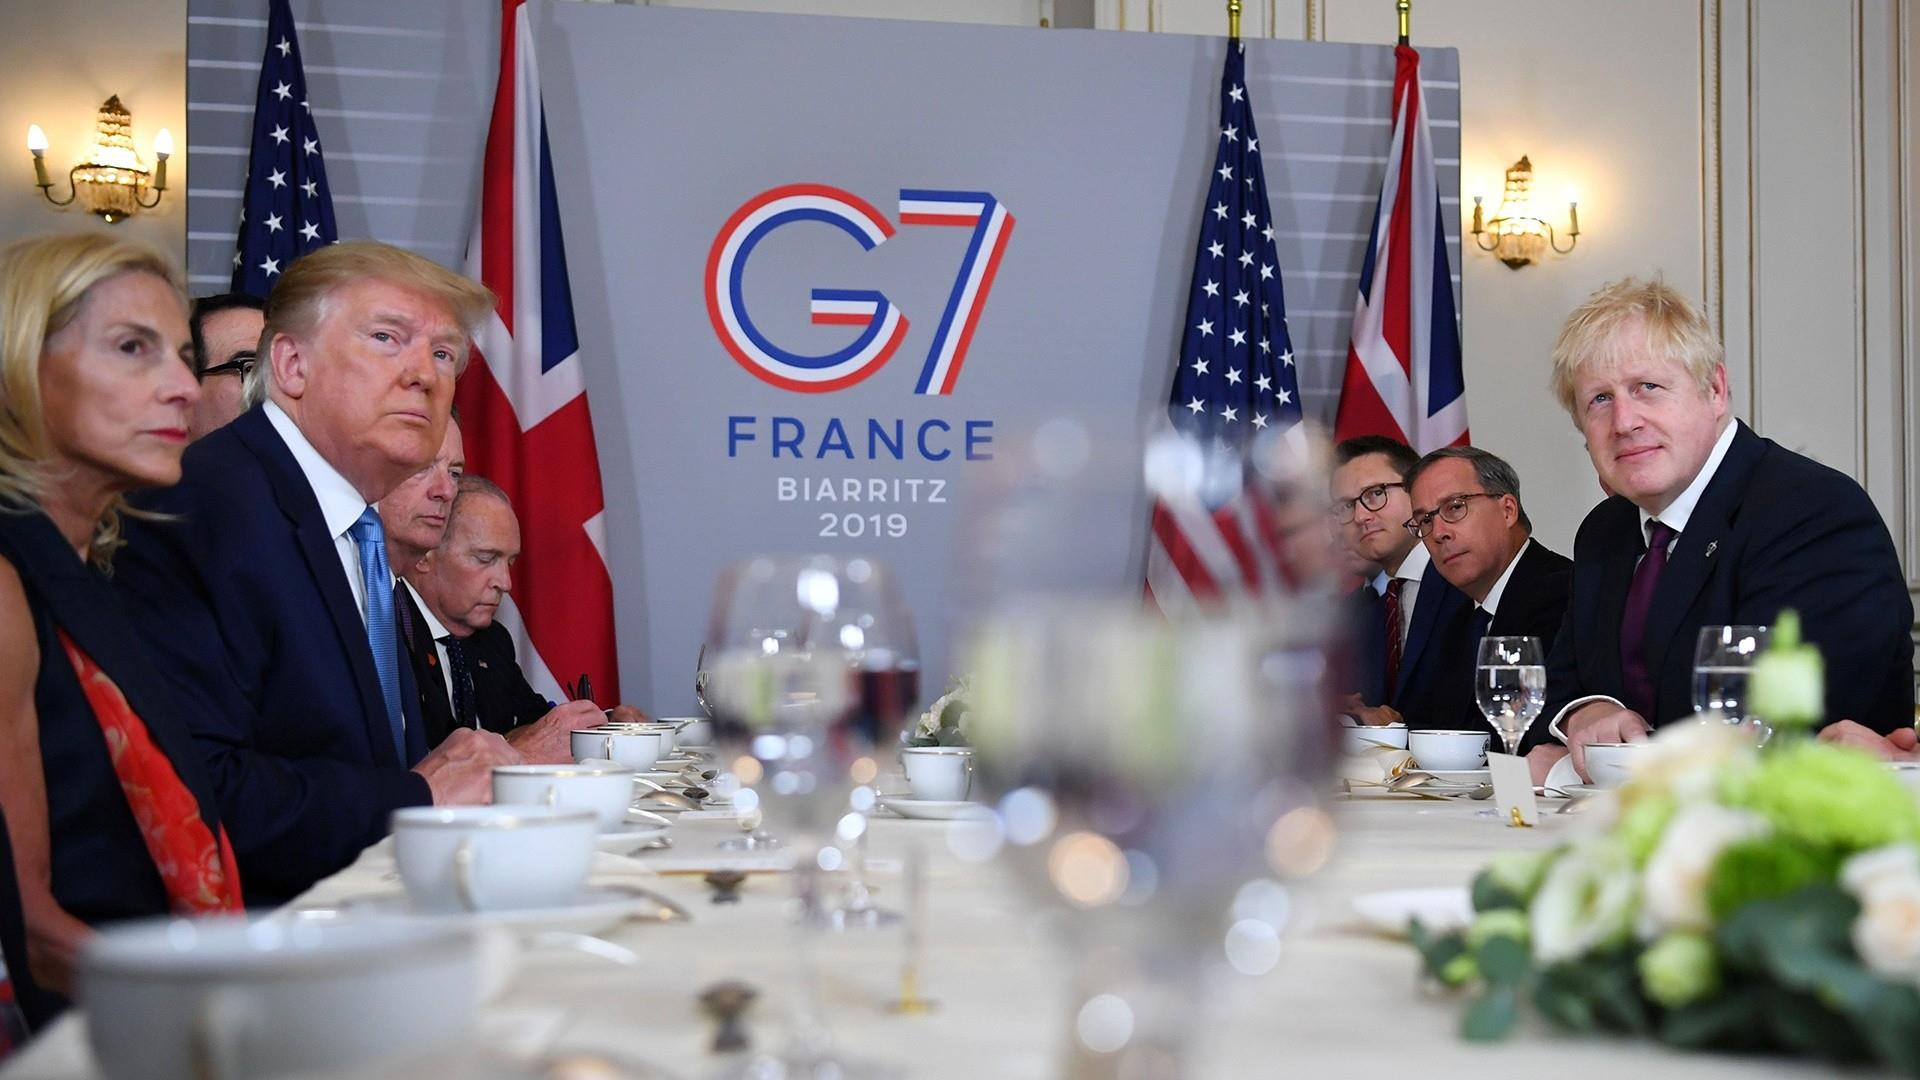 Trump says world leaders 'getting along very well' at G-7 summit despite trade tensions